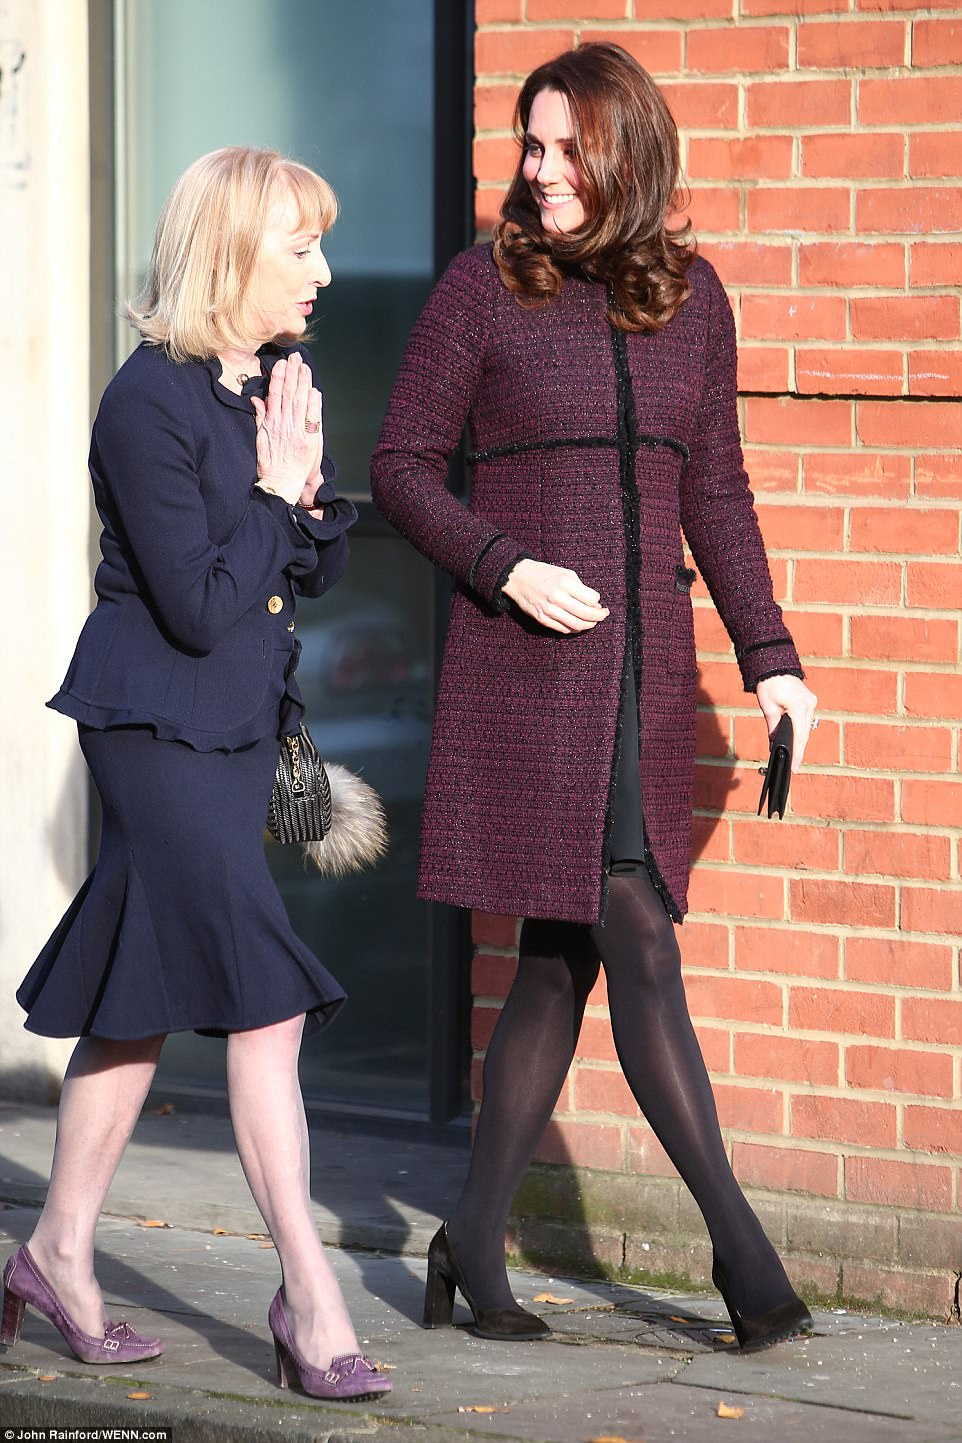 The Duchess of Cambridge vists the Rugby Portobello Trust